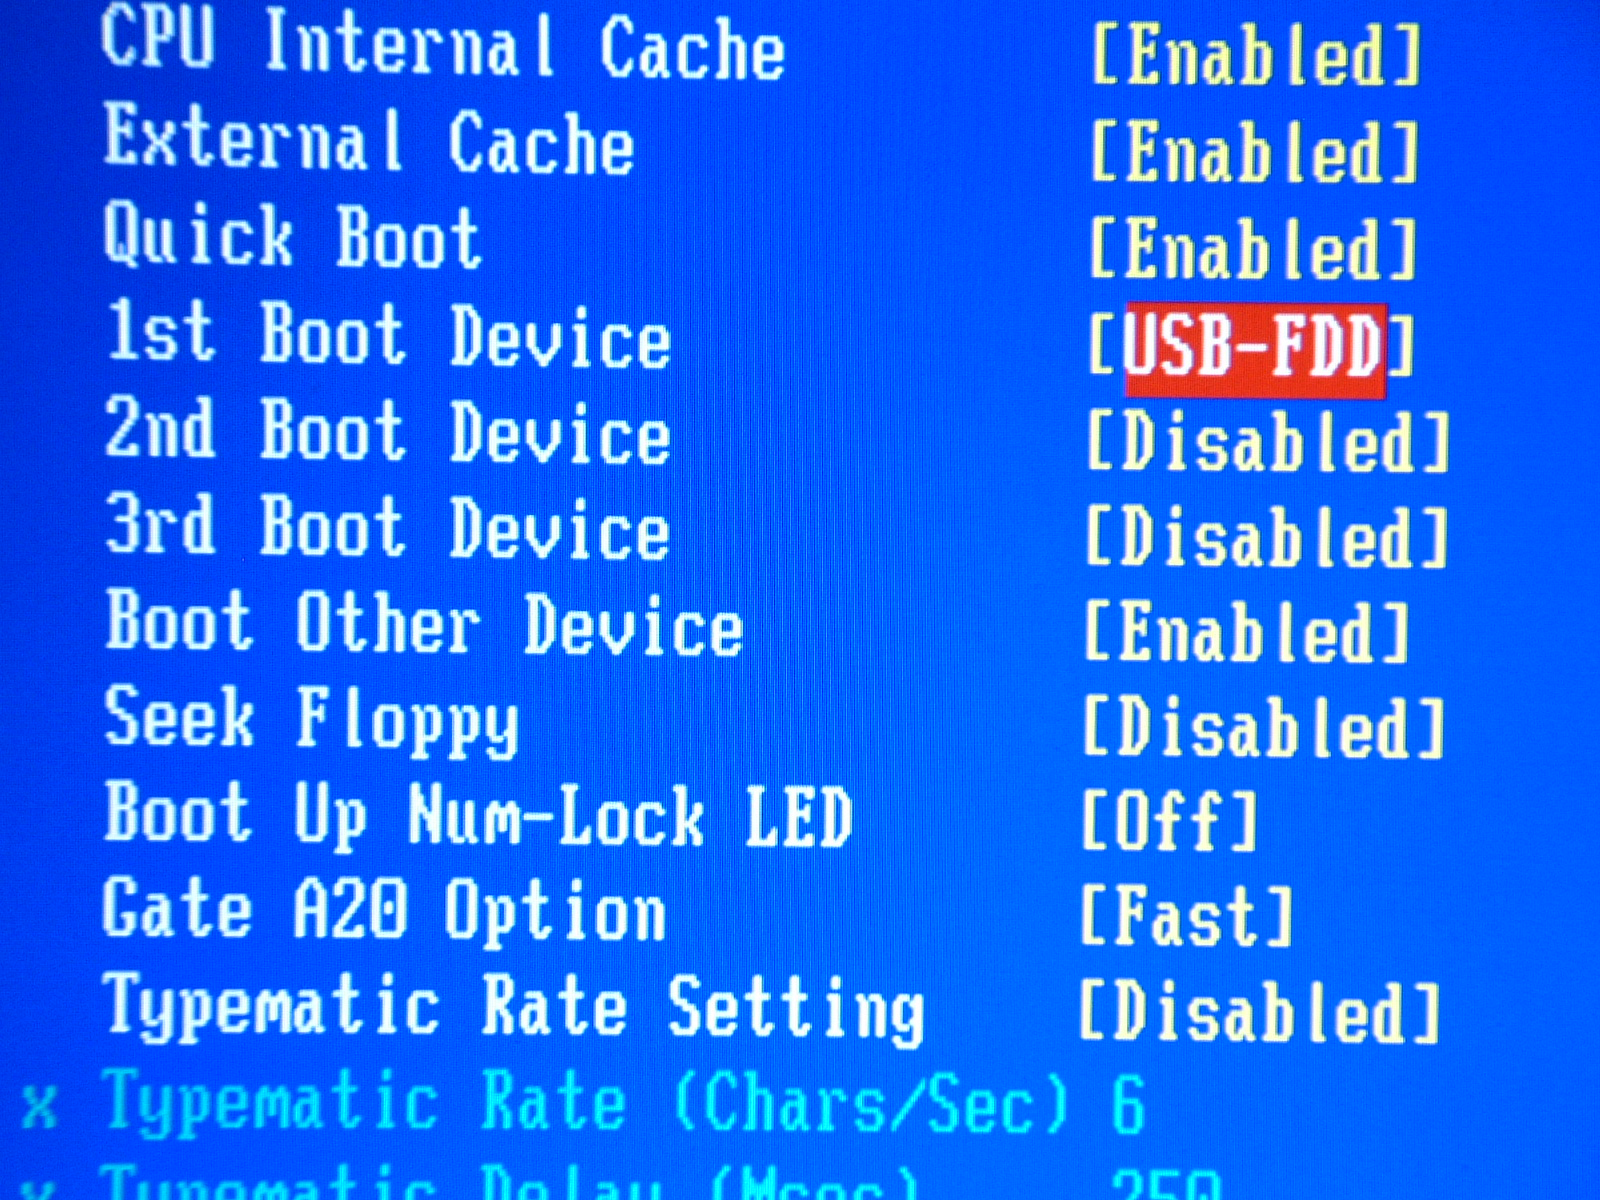 Configure USB in the BIOS